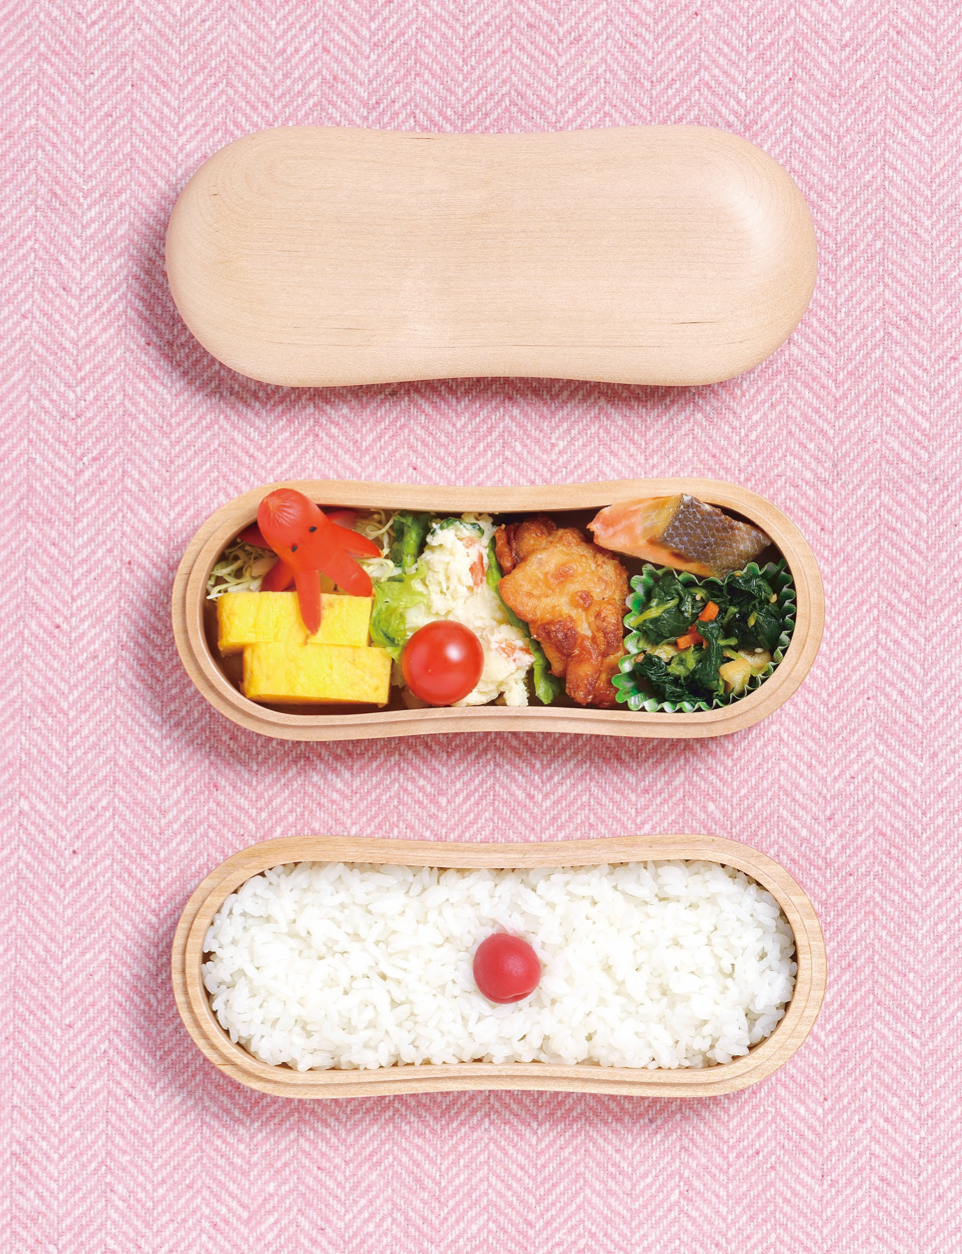 BENTO Box (Lunch Box)